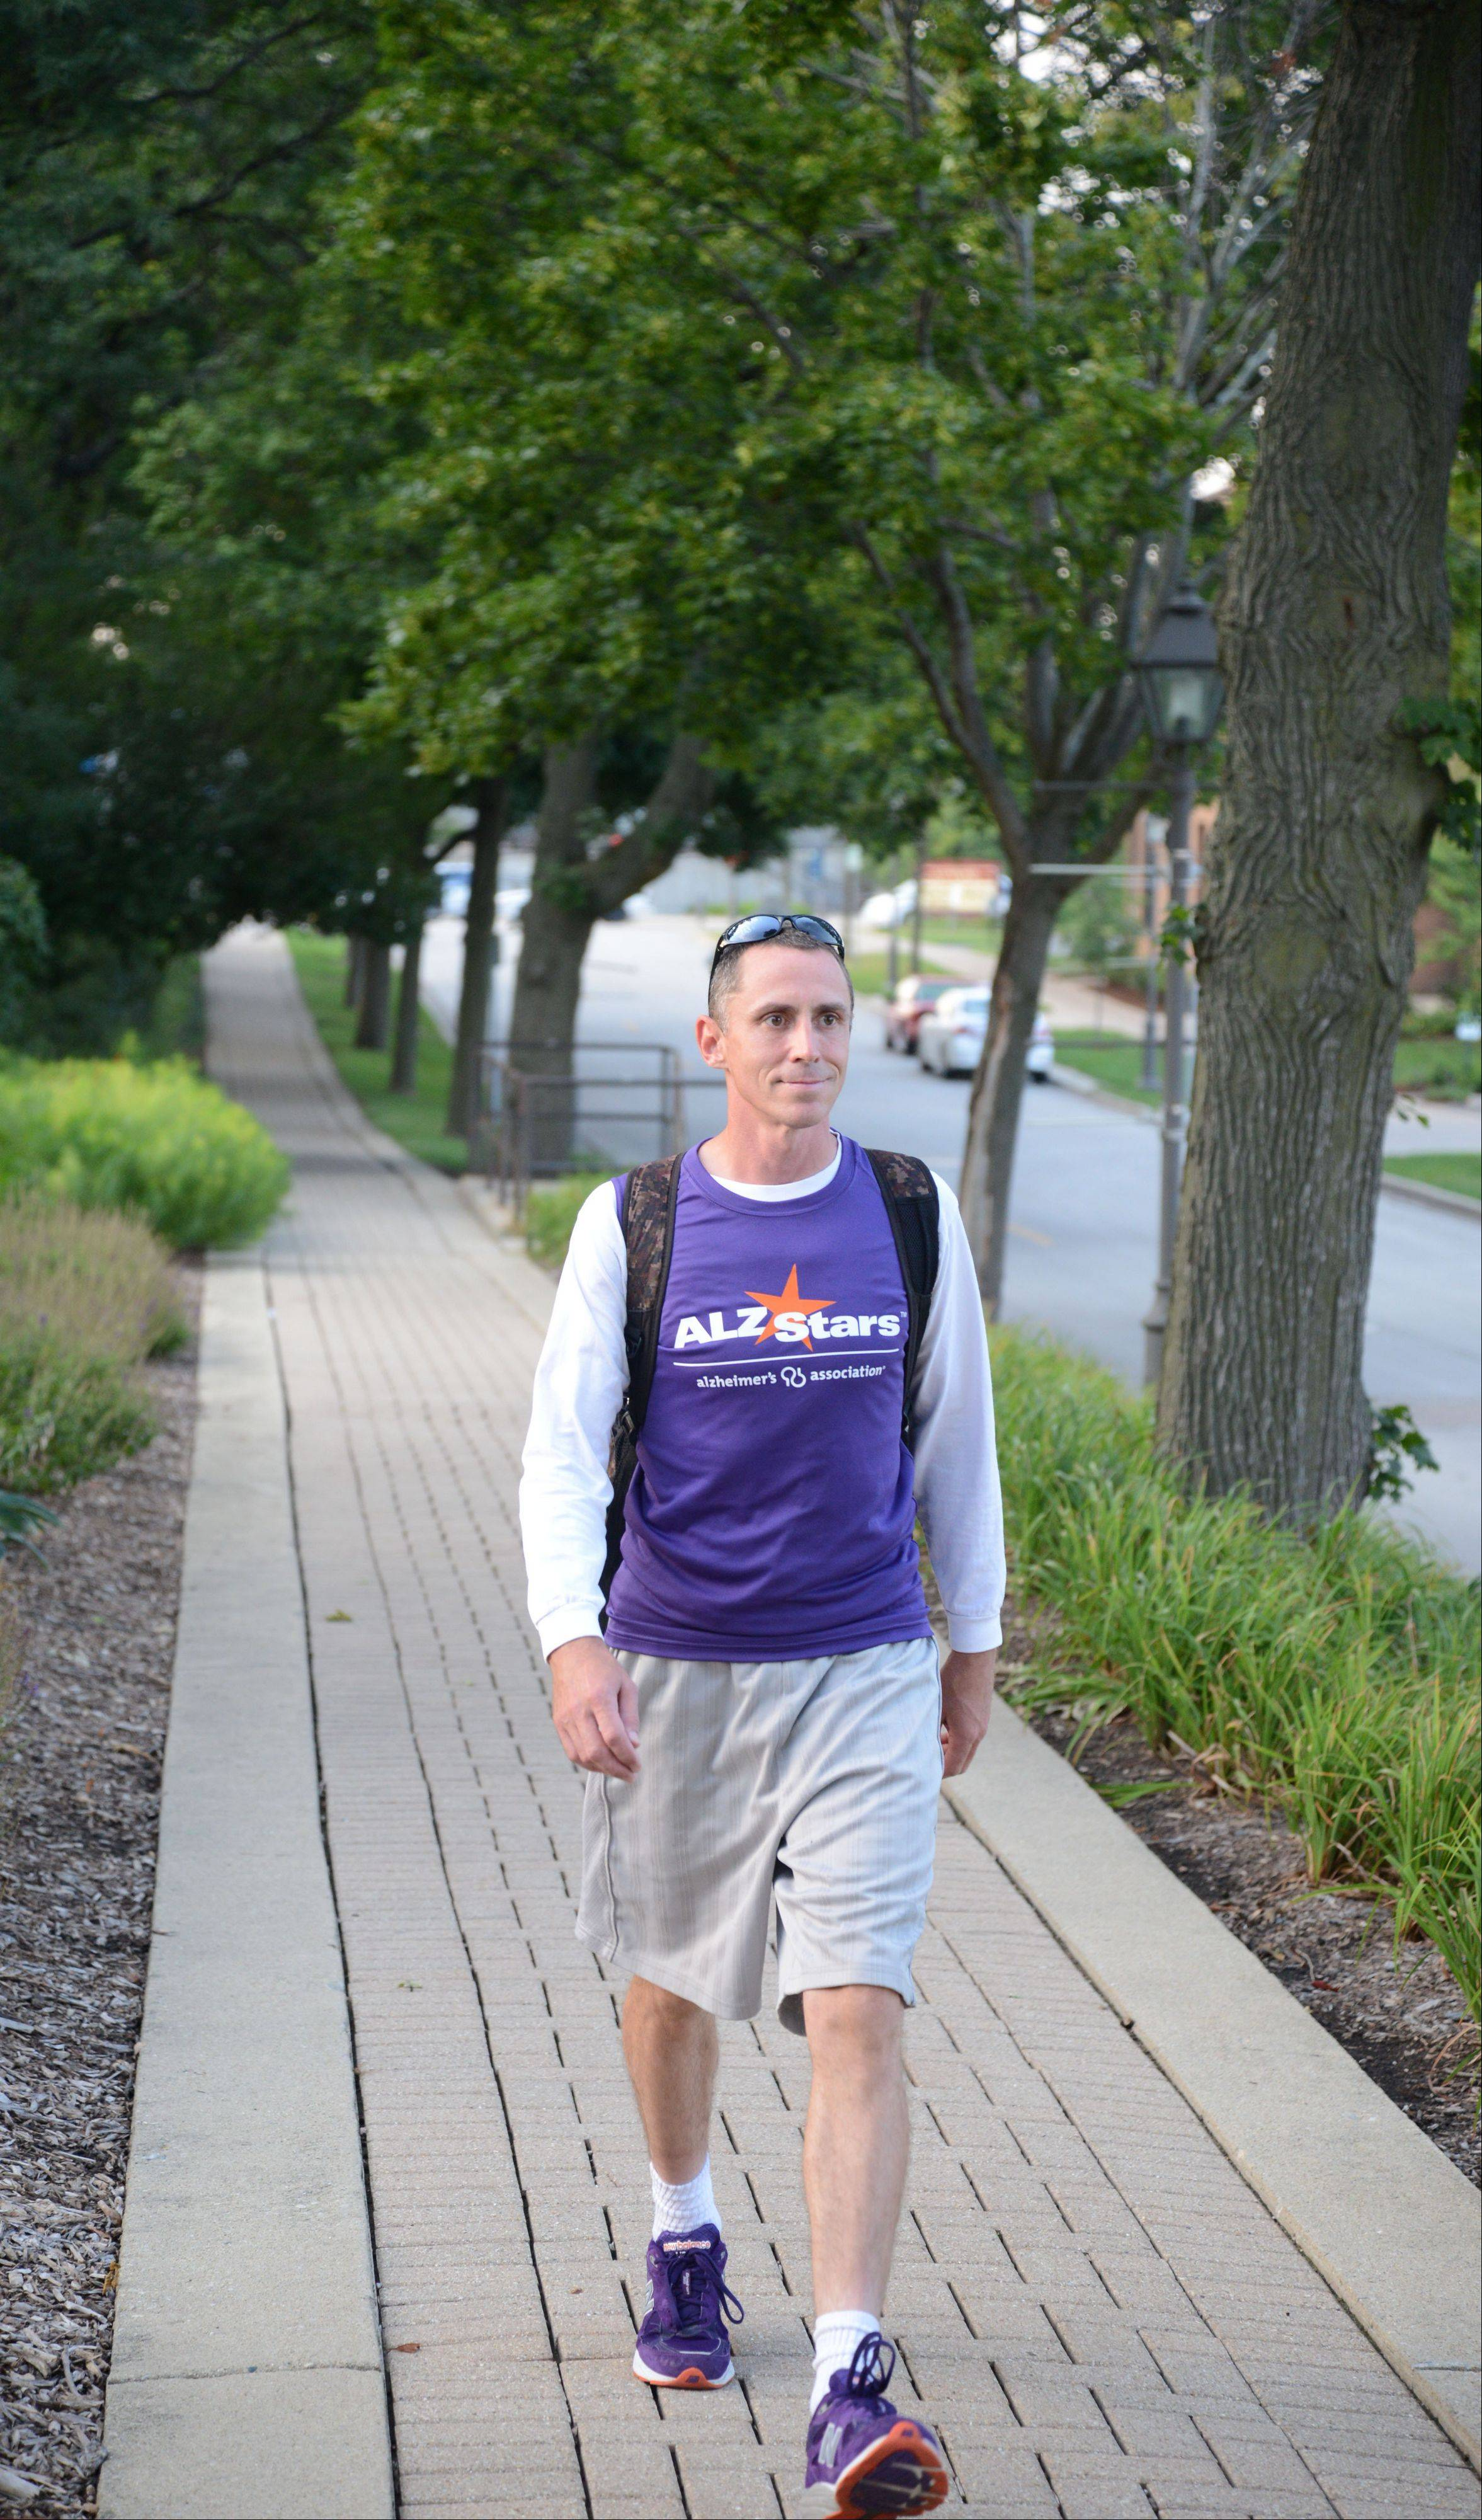 William Glass of Lombard completed a 58-day, more than 750-mile walk to Atlanta to be with his mother, who has Alzheimer's disease, and to console families of other Alzheimer's patients along the way. His walk also raised funds for the Alzheimer's Association and promoted the federal HOPE for Alzheimer's Act.